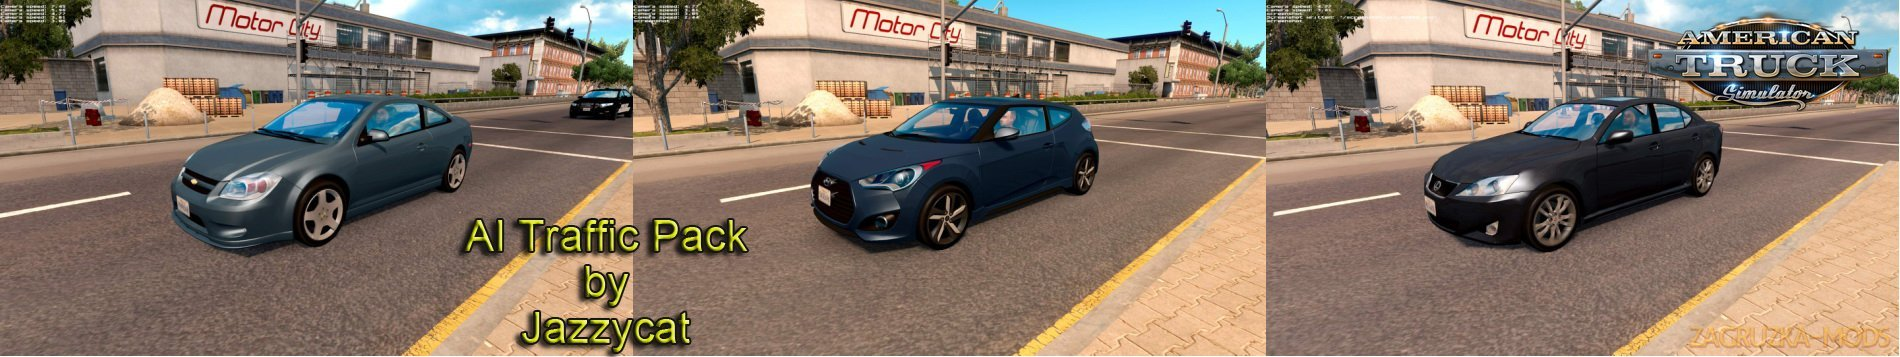 AI Traffic Pack v2.7 by Jazzycat